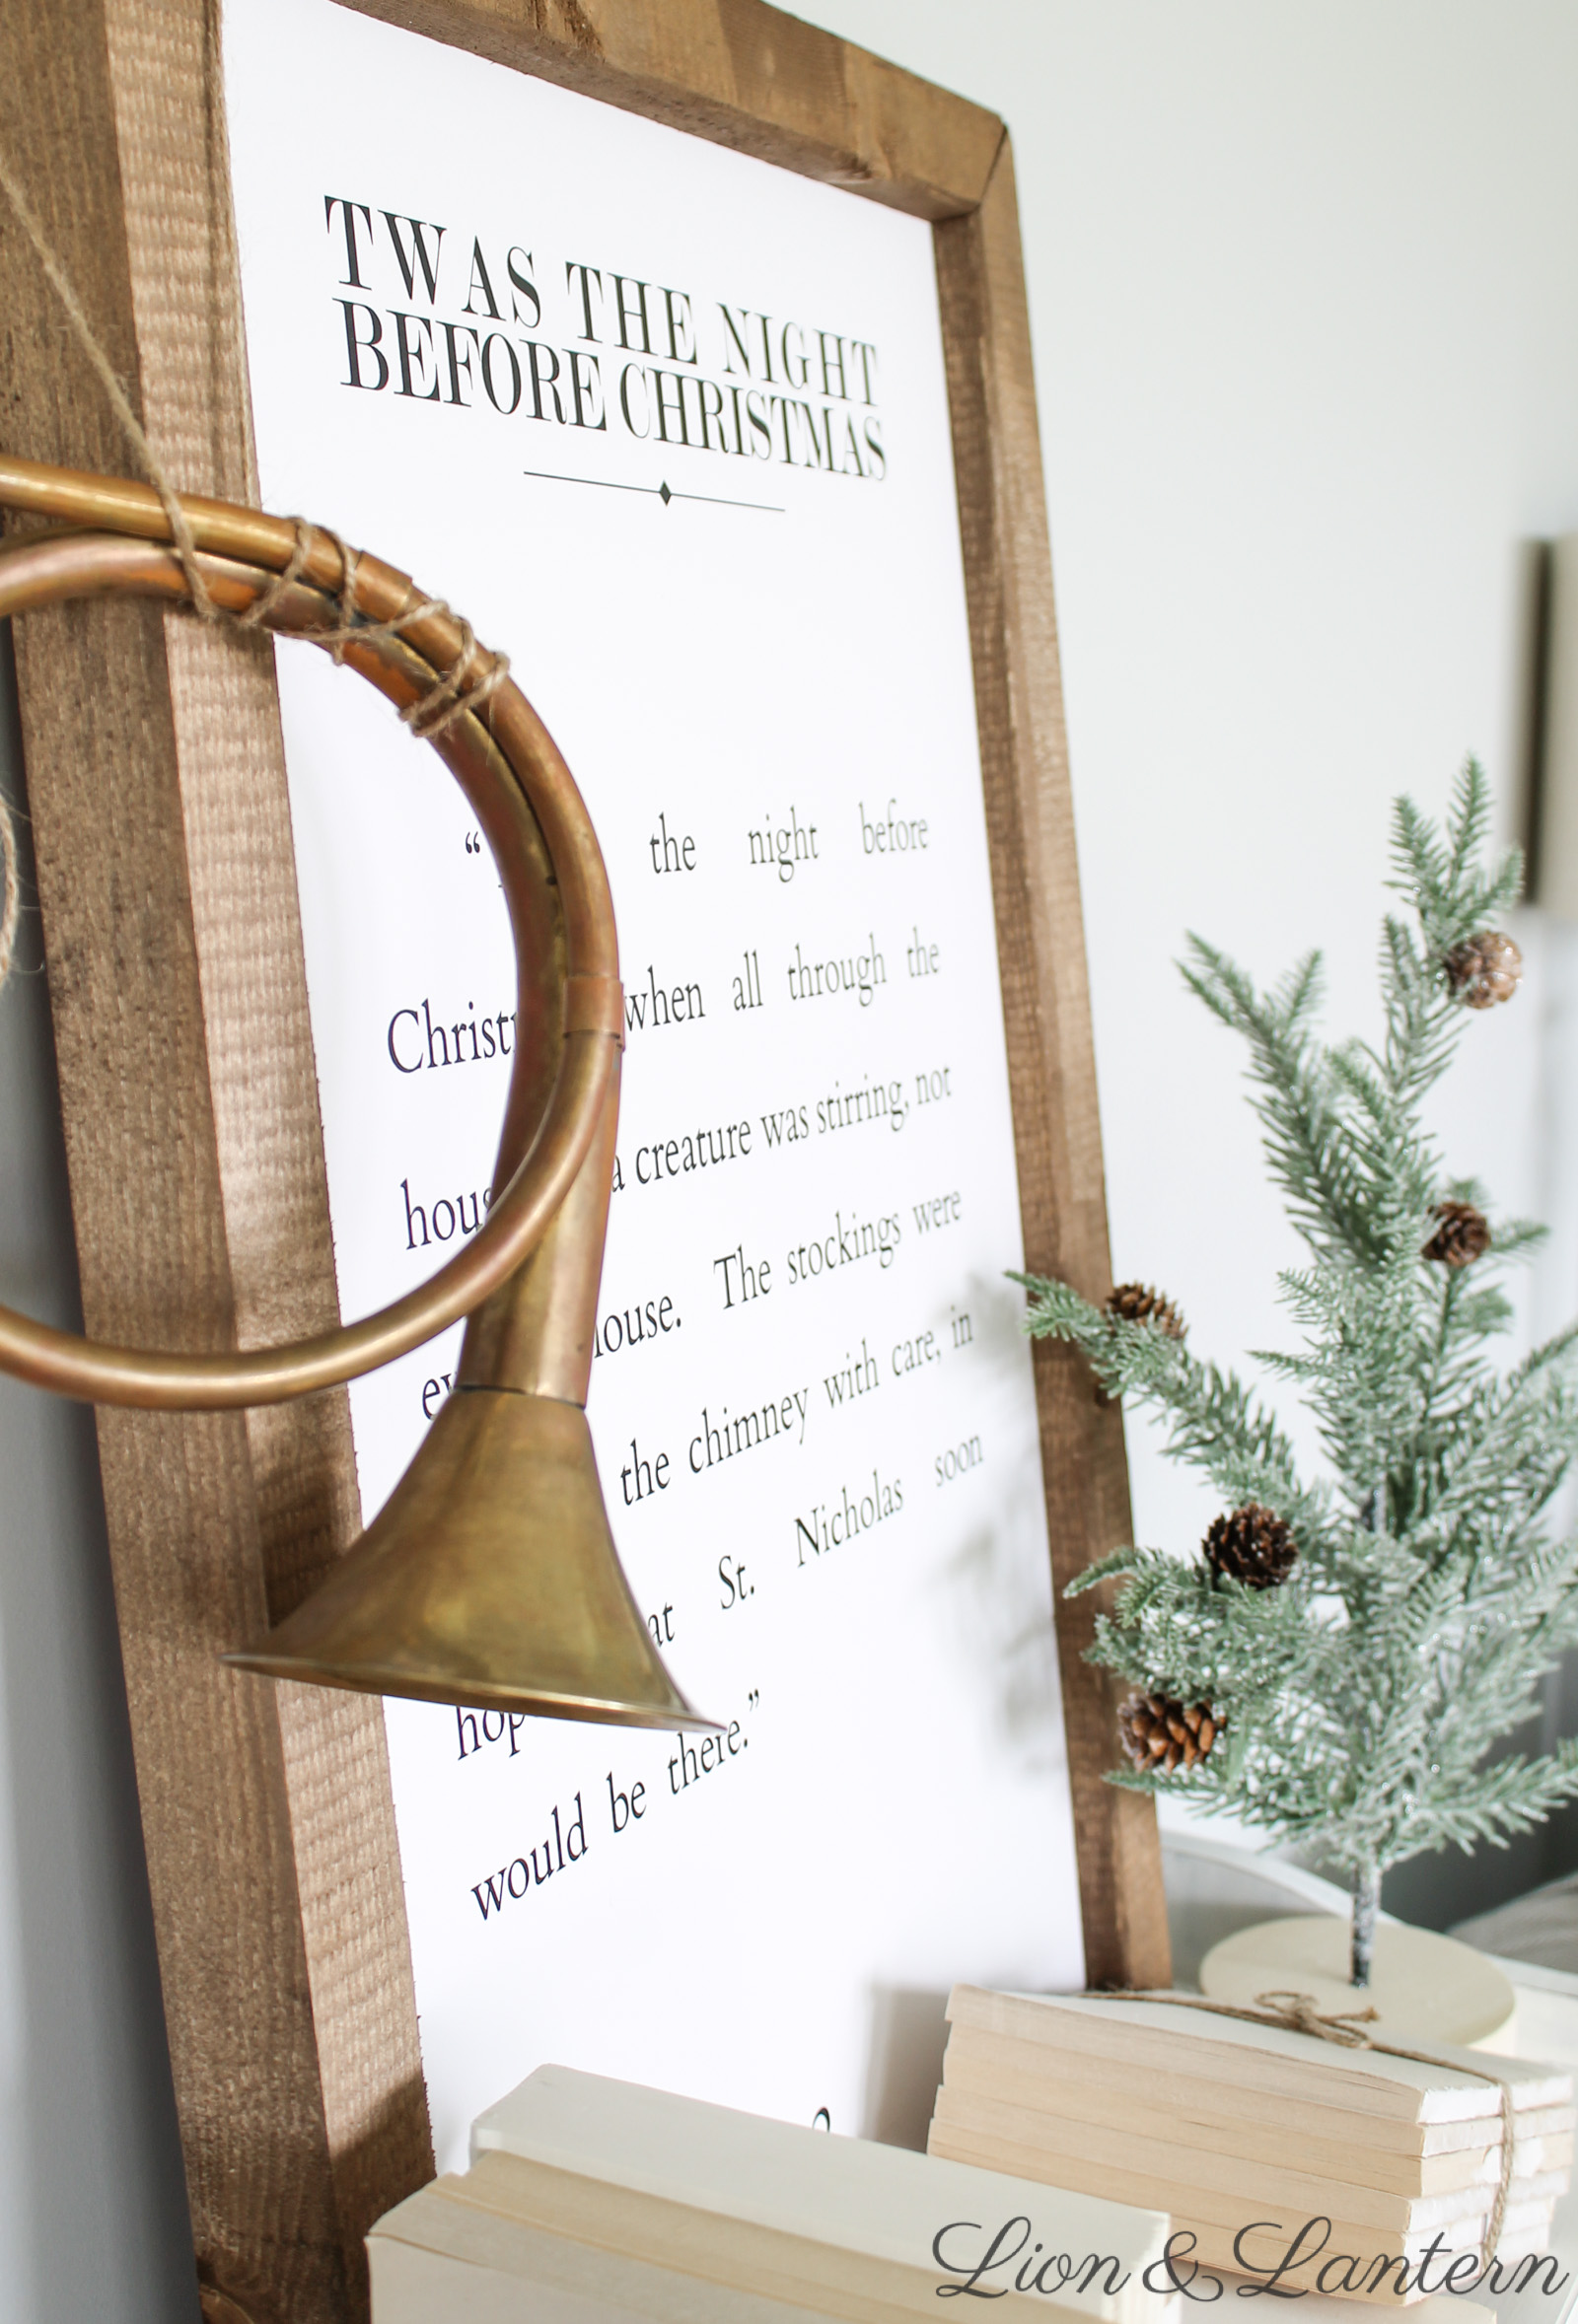 Rustic Christmas Bookshelf at LionAndLantern.com. Farmhouse Christmas, holiday decor, seasonal inspiration, farmhouse sign, neutral decor, basket, chalk painted bookshelf